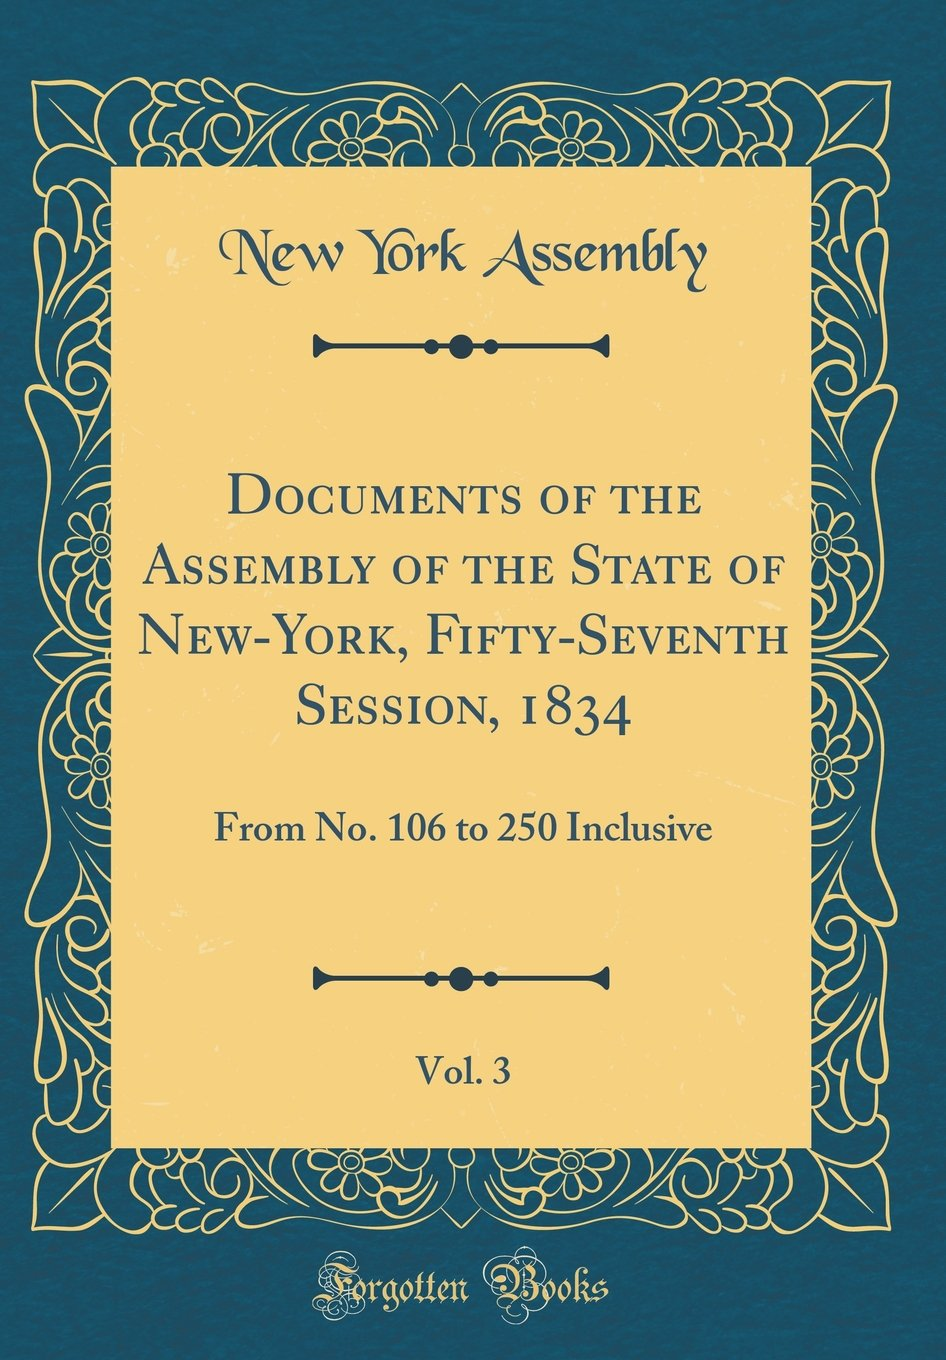 Documents of the Assembly of the State of New-York, Fifty-Seventh Session, 1834, Vol. 3: From No. 106 to 250 Inclusive (Classic Reprint) PDF